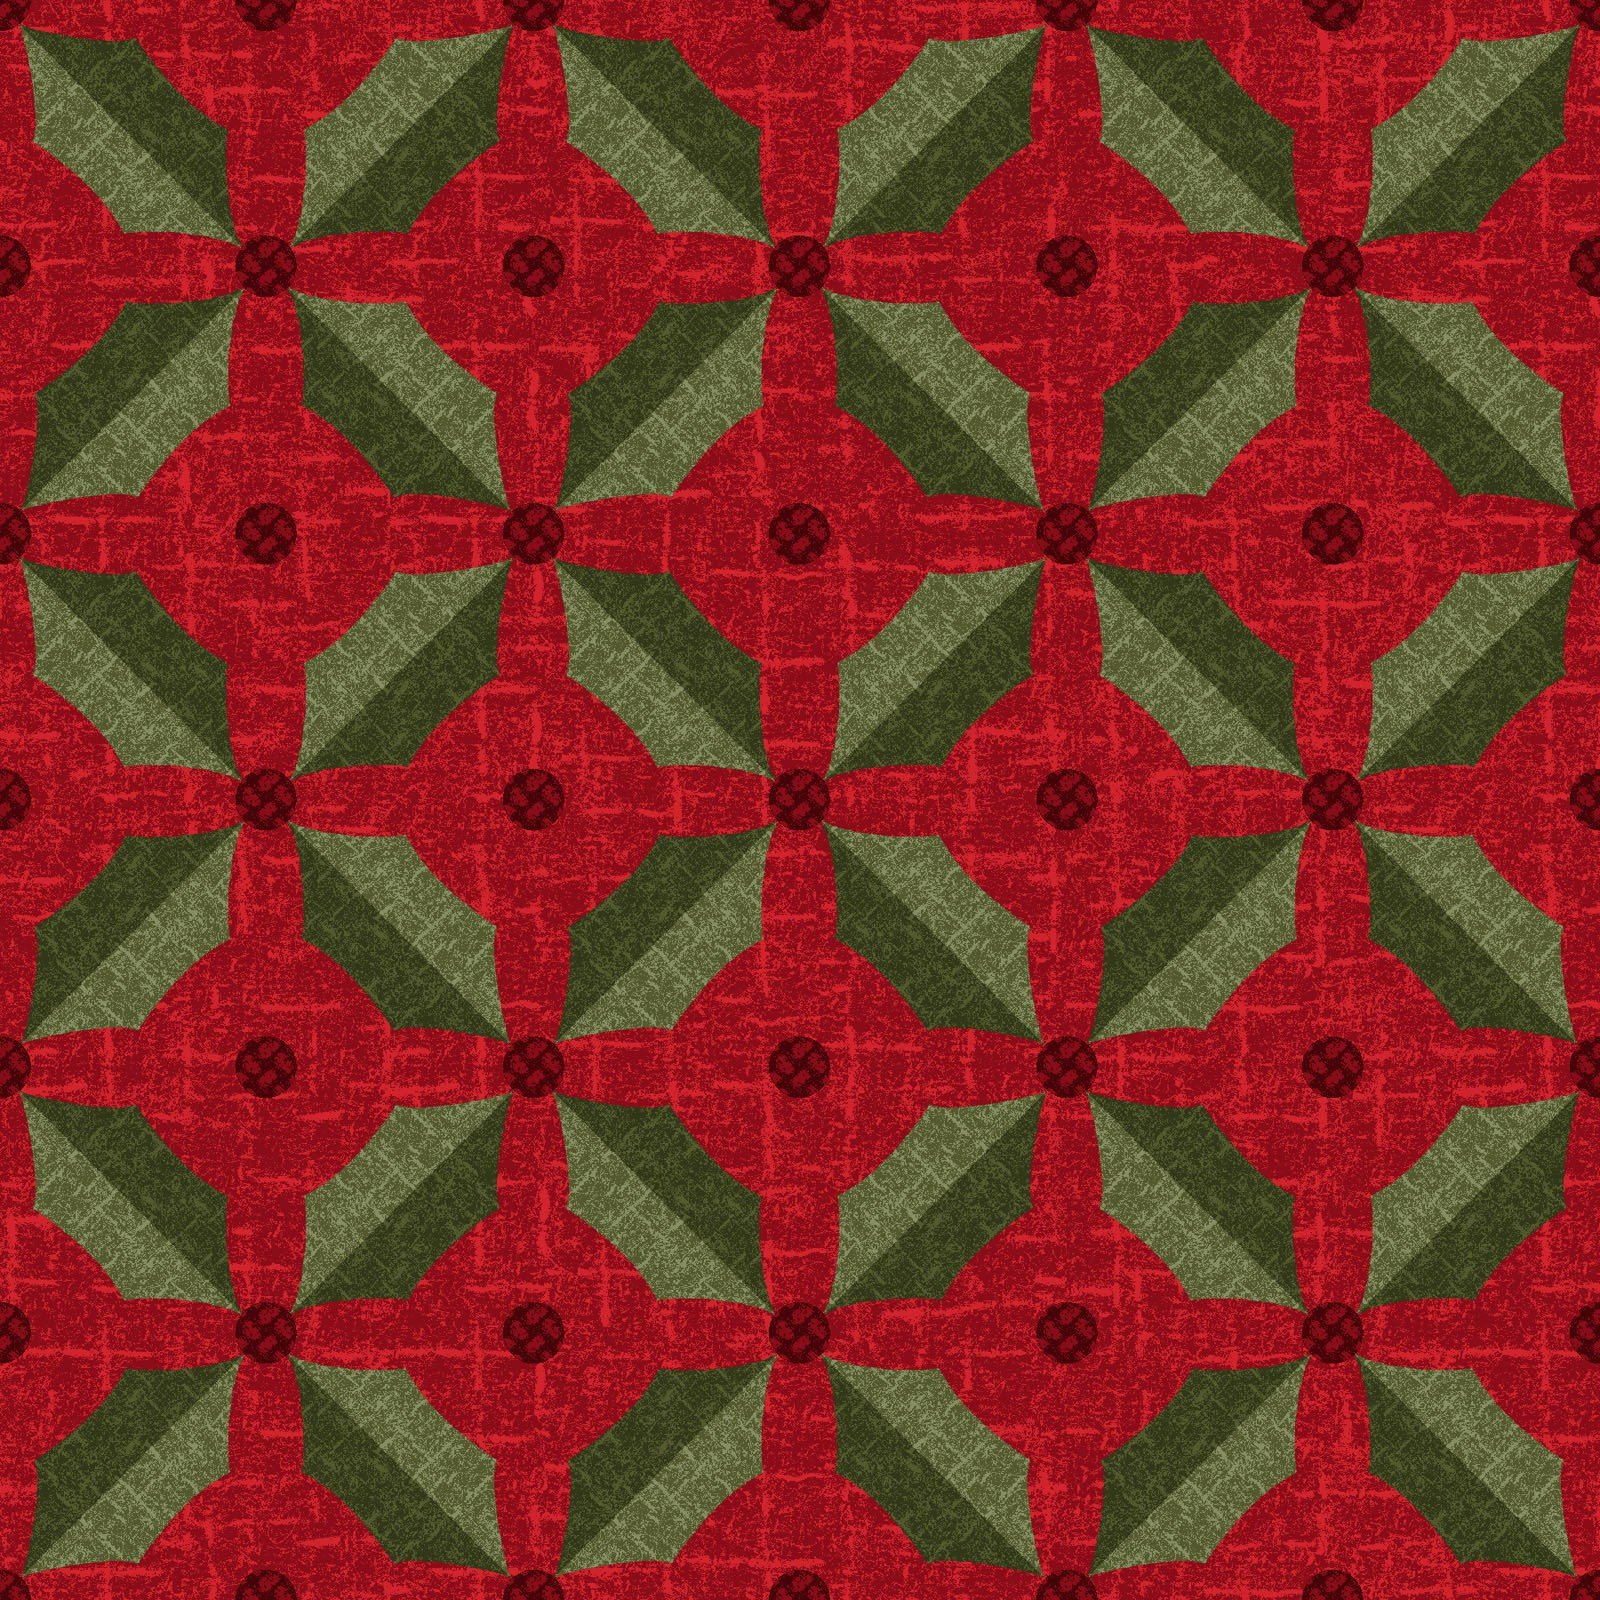 Snowdays Flannel - Holly 9935 R Red